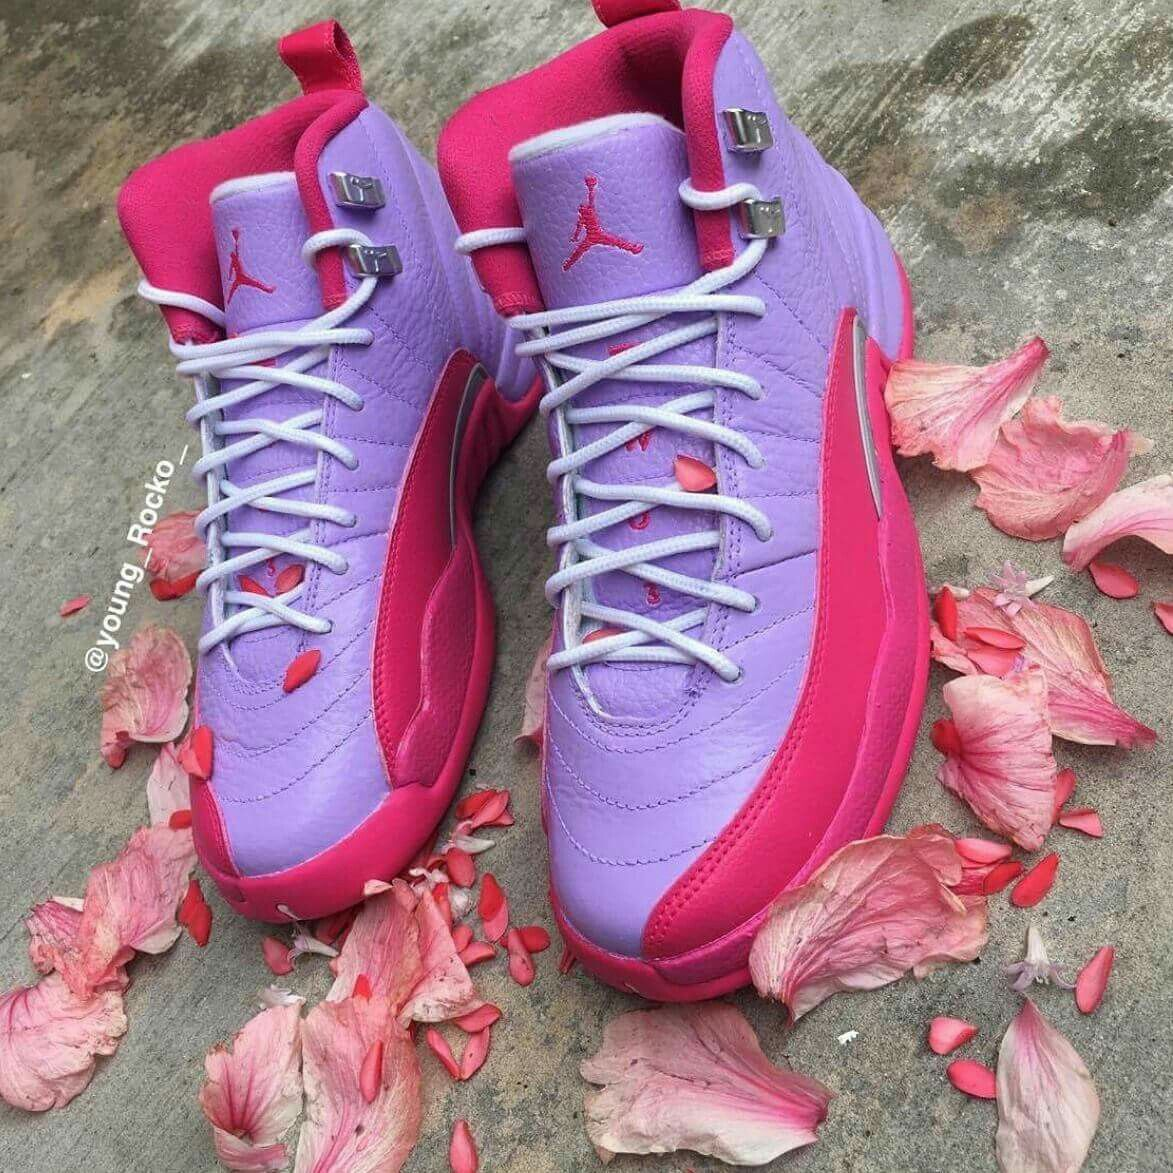 new concept 658c2 4a5d2 Now thats some real deal lavender  fuschia pink combo!